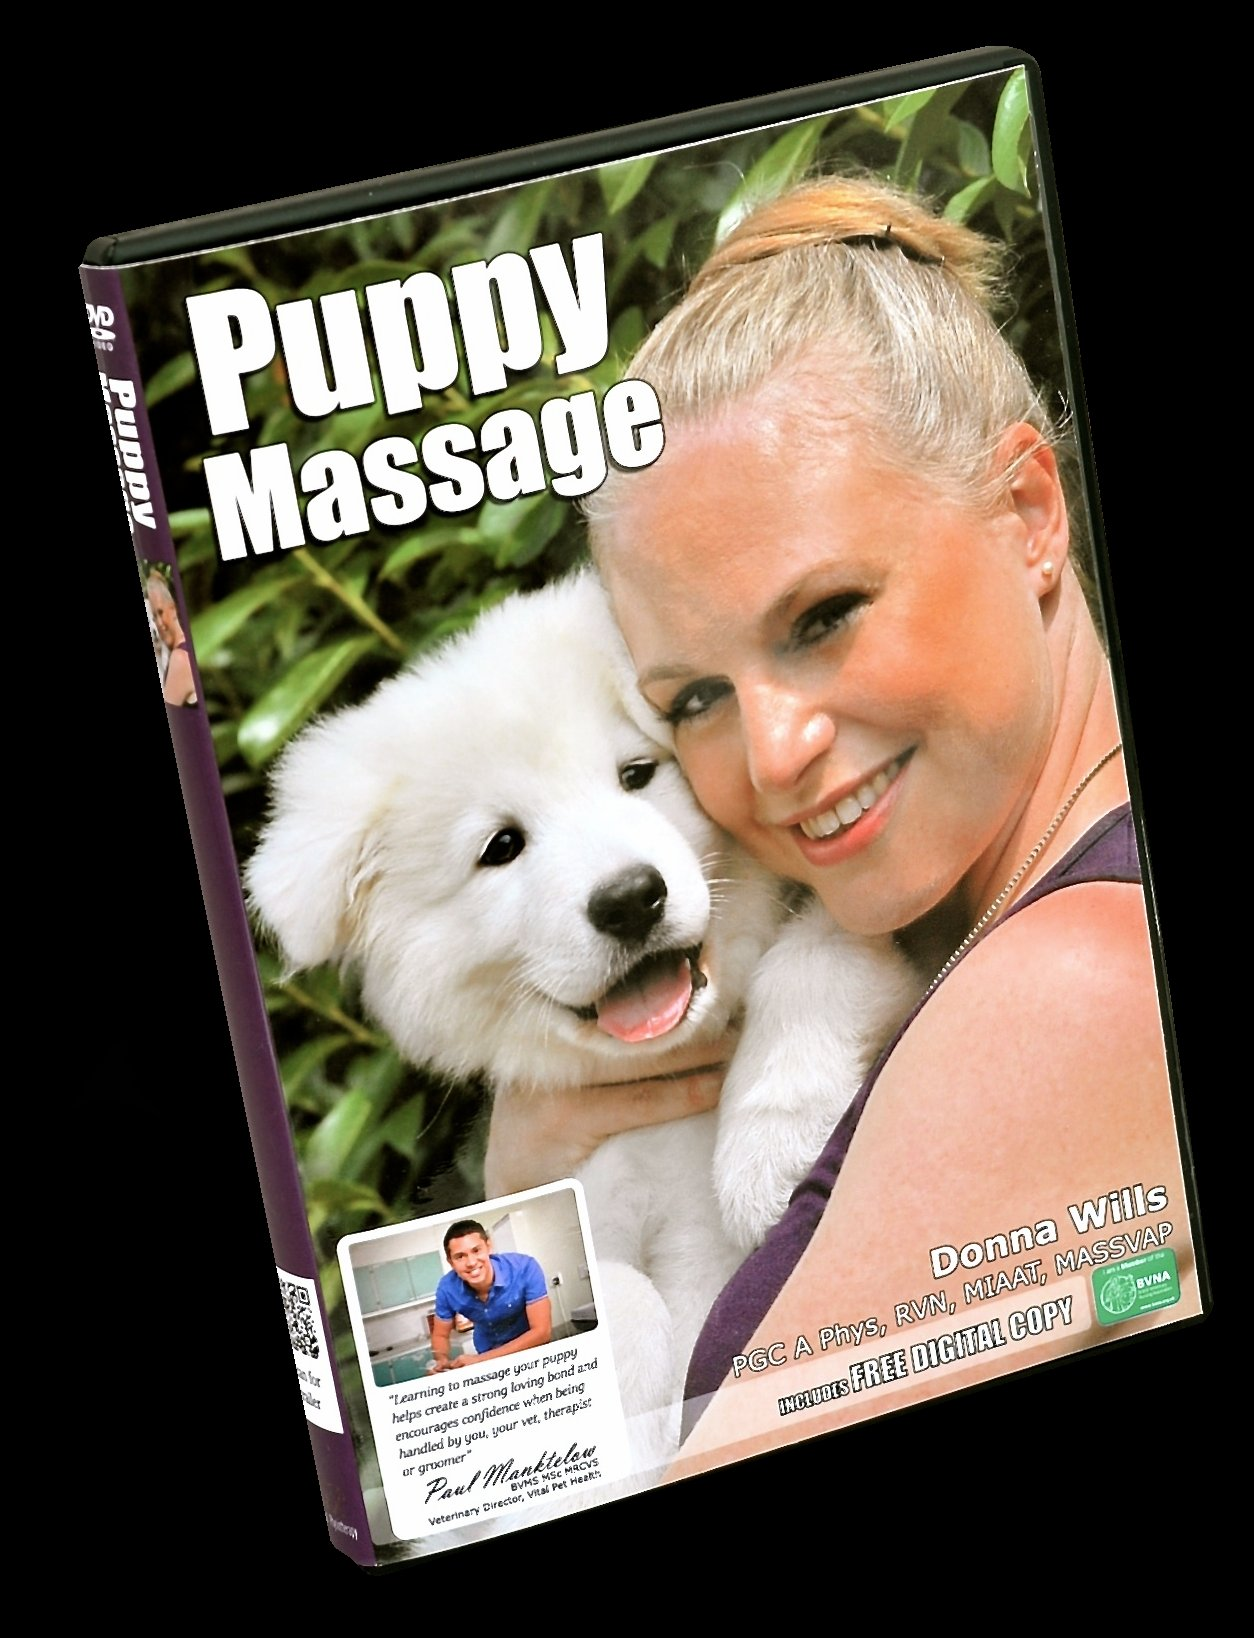 Puppy massage DVD